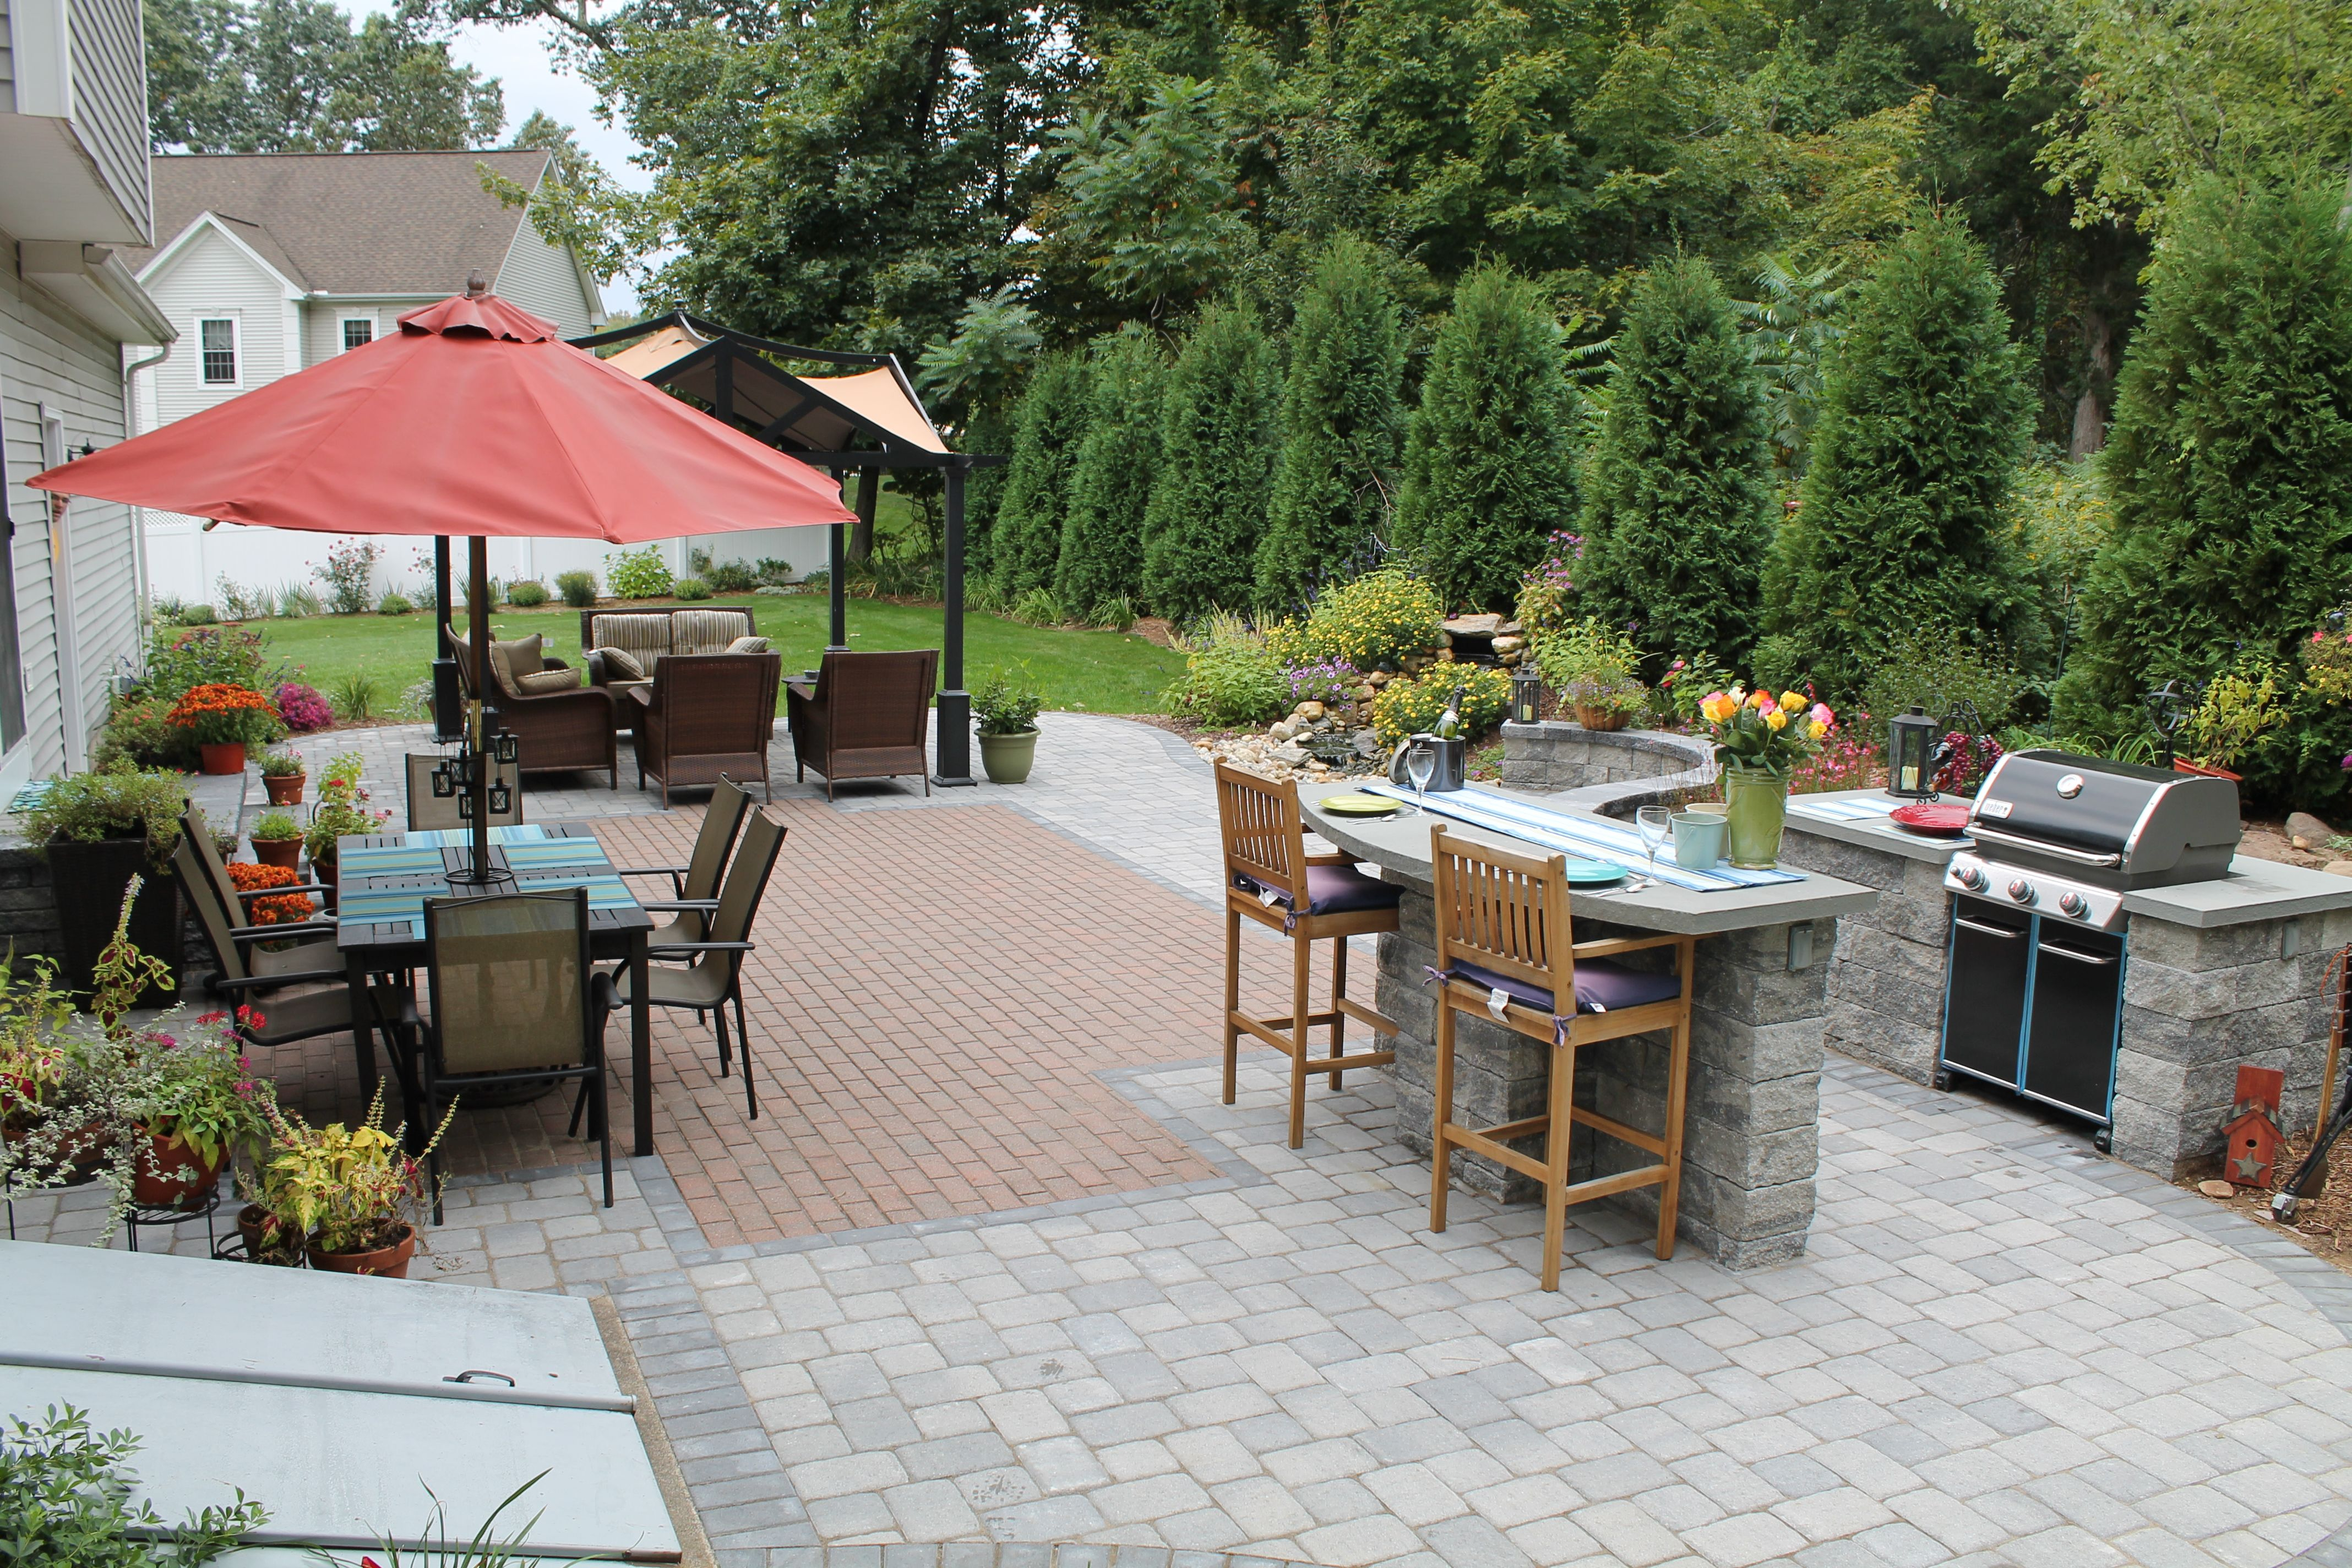 Outdoor Kitchen With Built In Grill And Bar On Paver